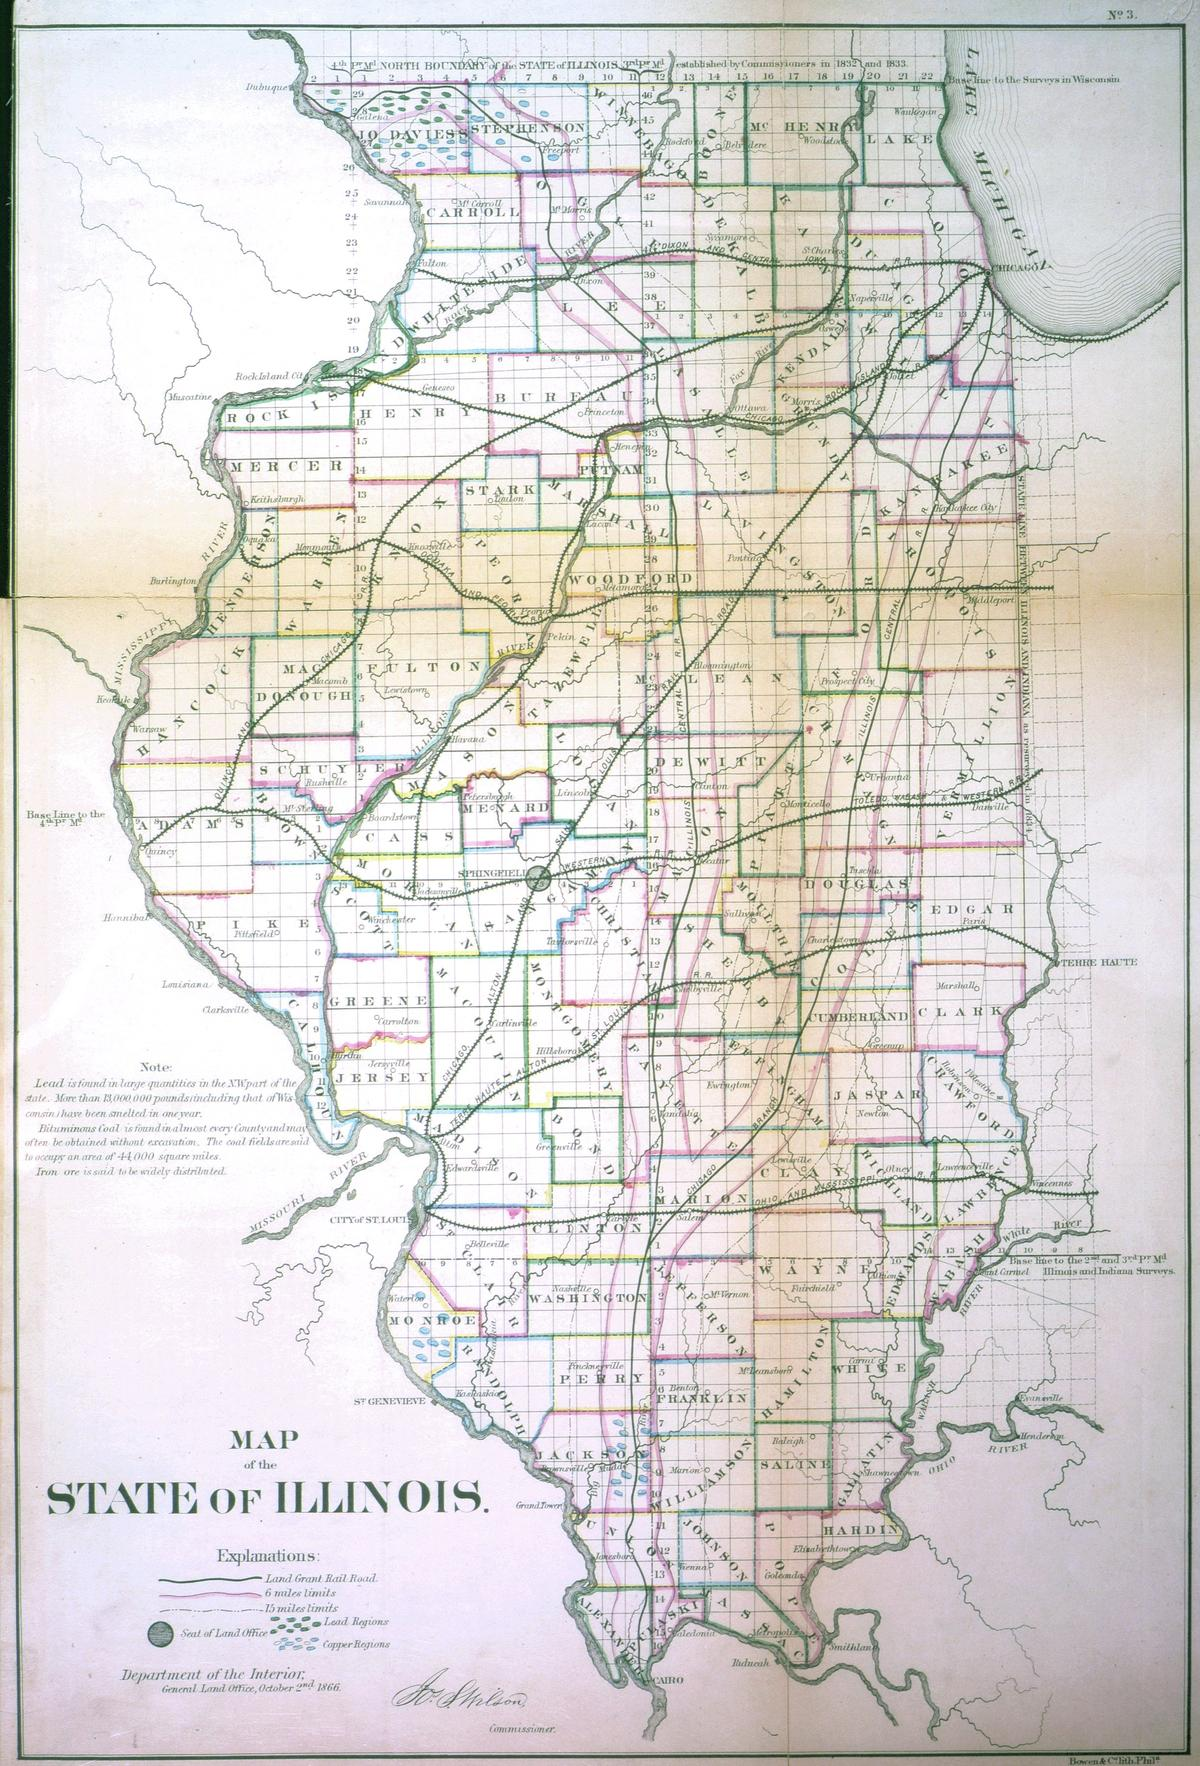 Map of the state of Illinois